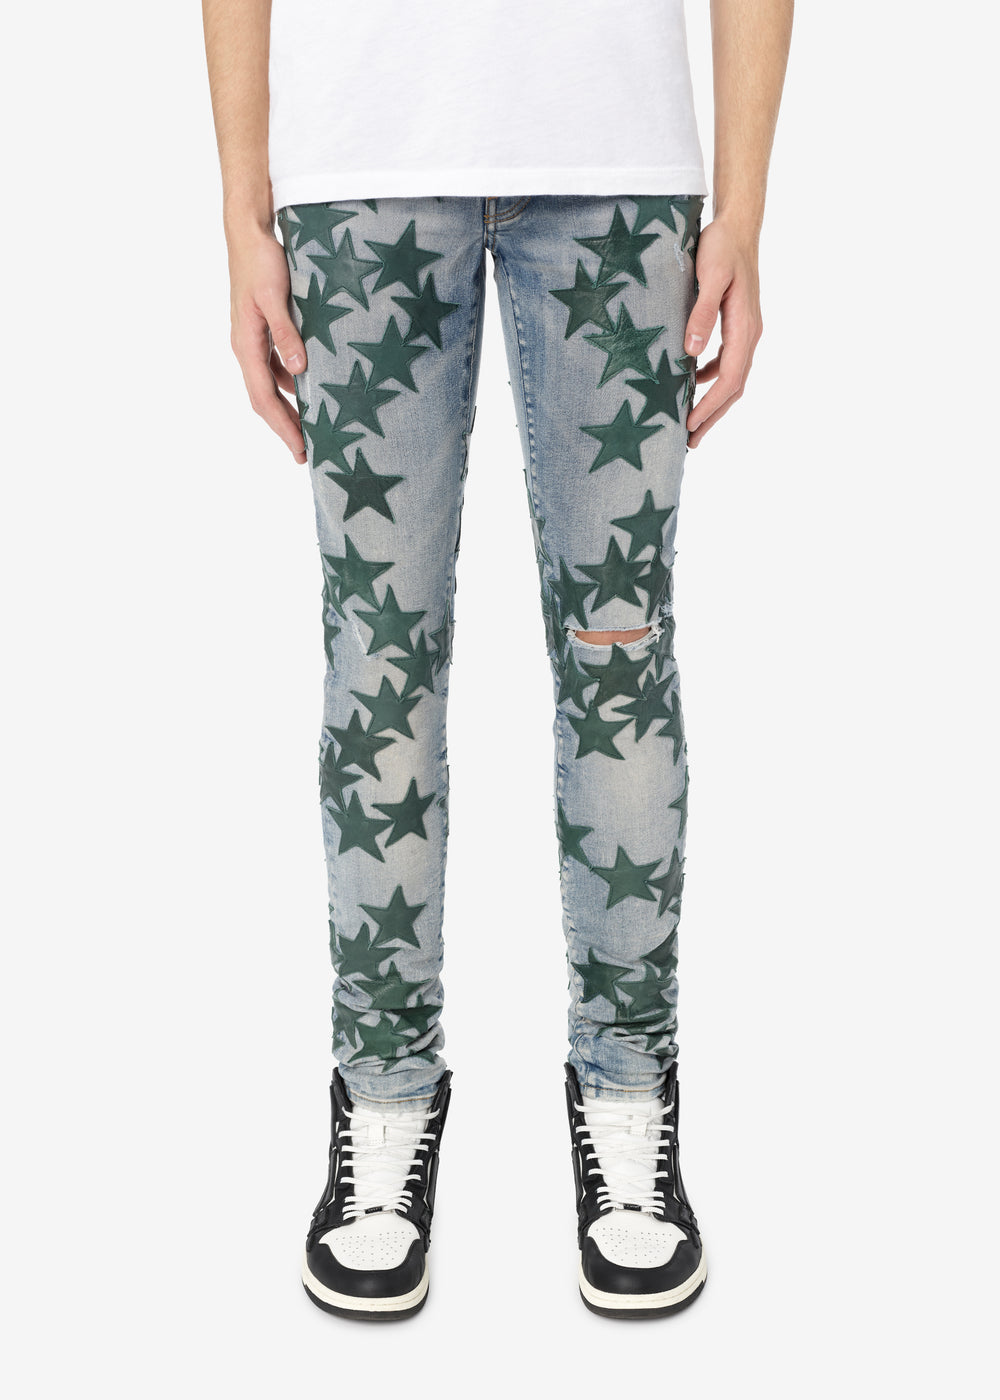 CHEMIST LEATHER STARS JEAN - CLAY INDIGO / GREEN